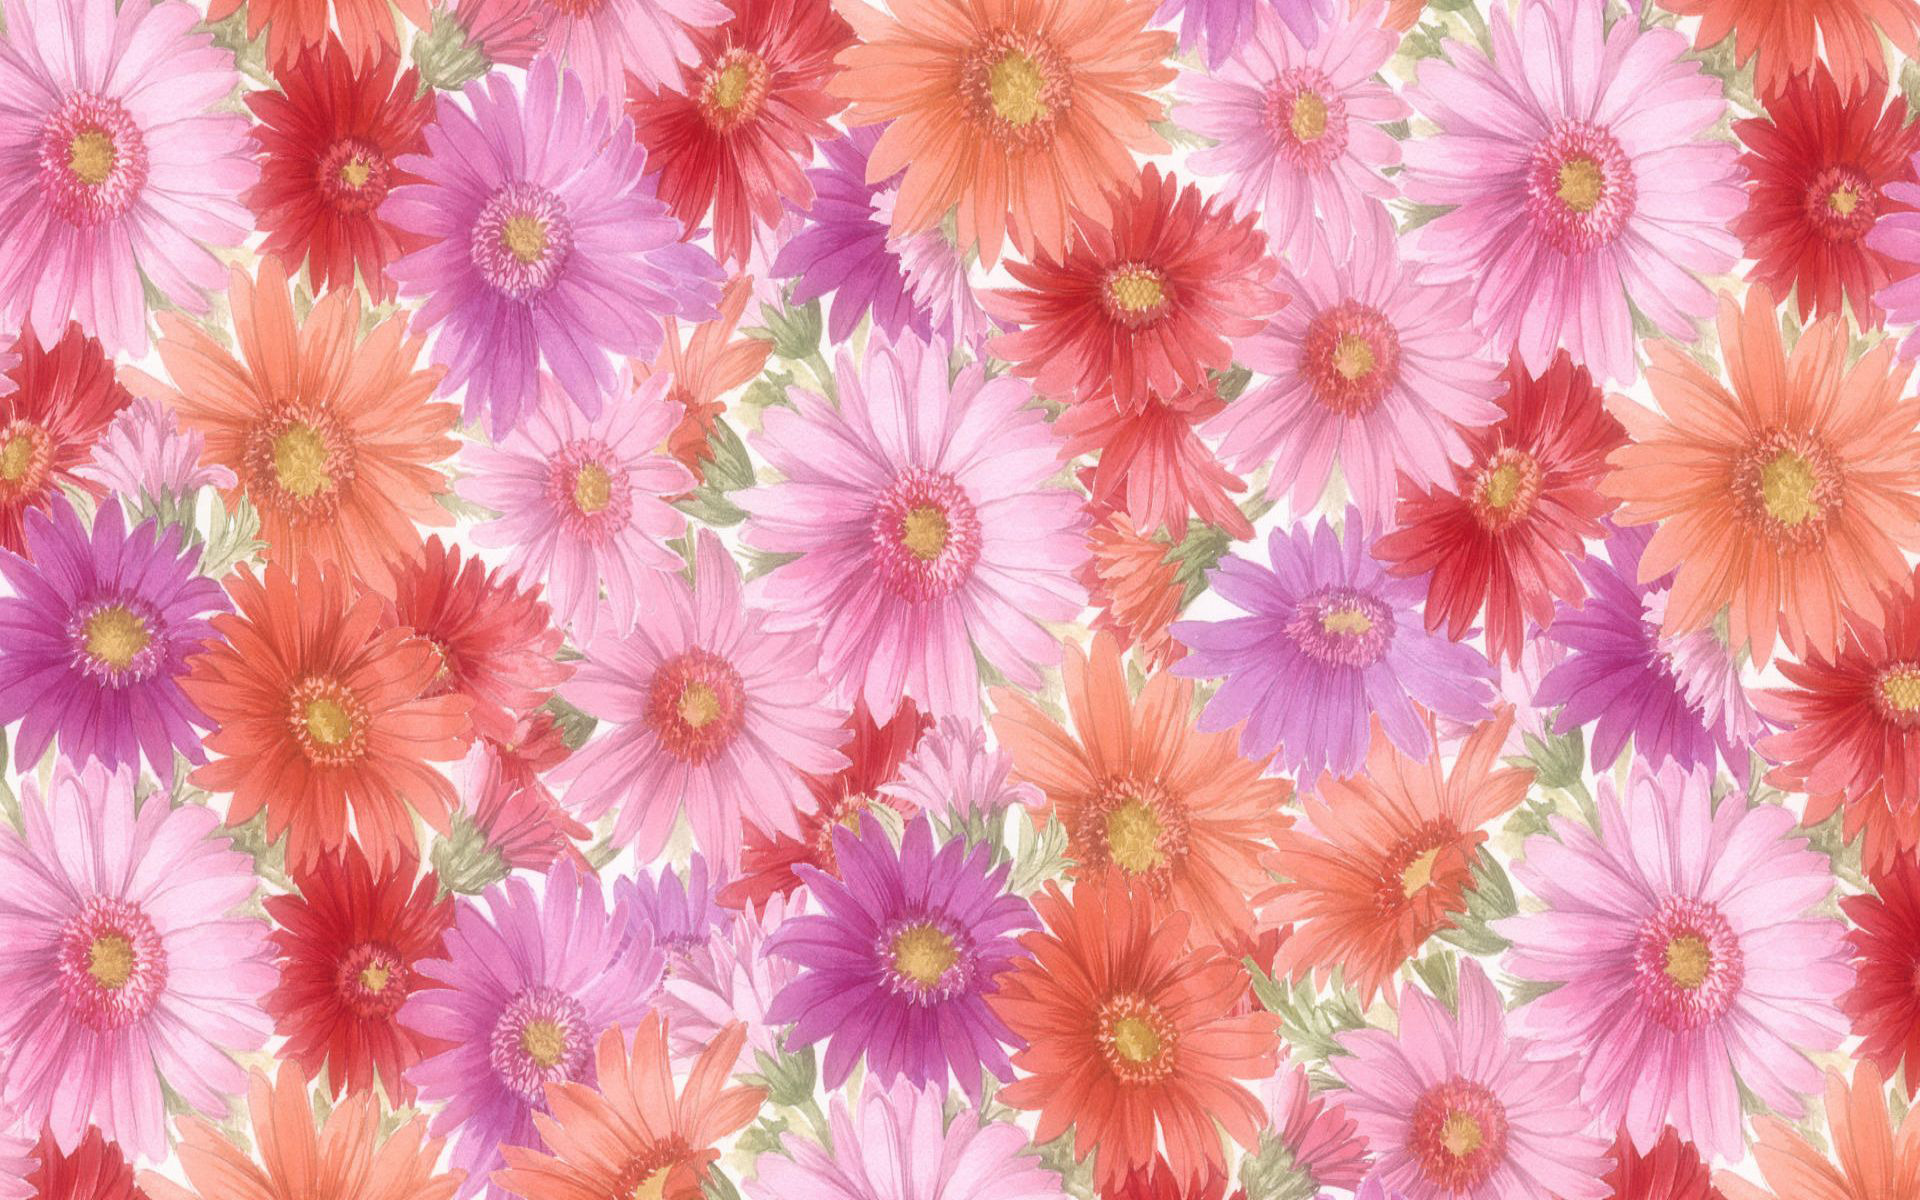 Gerberas wallpaper